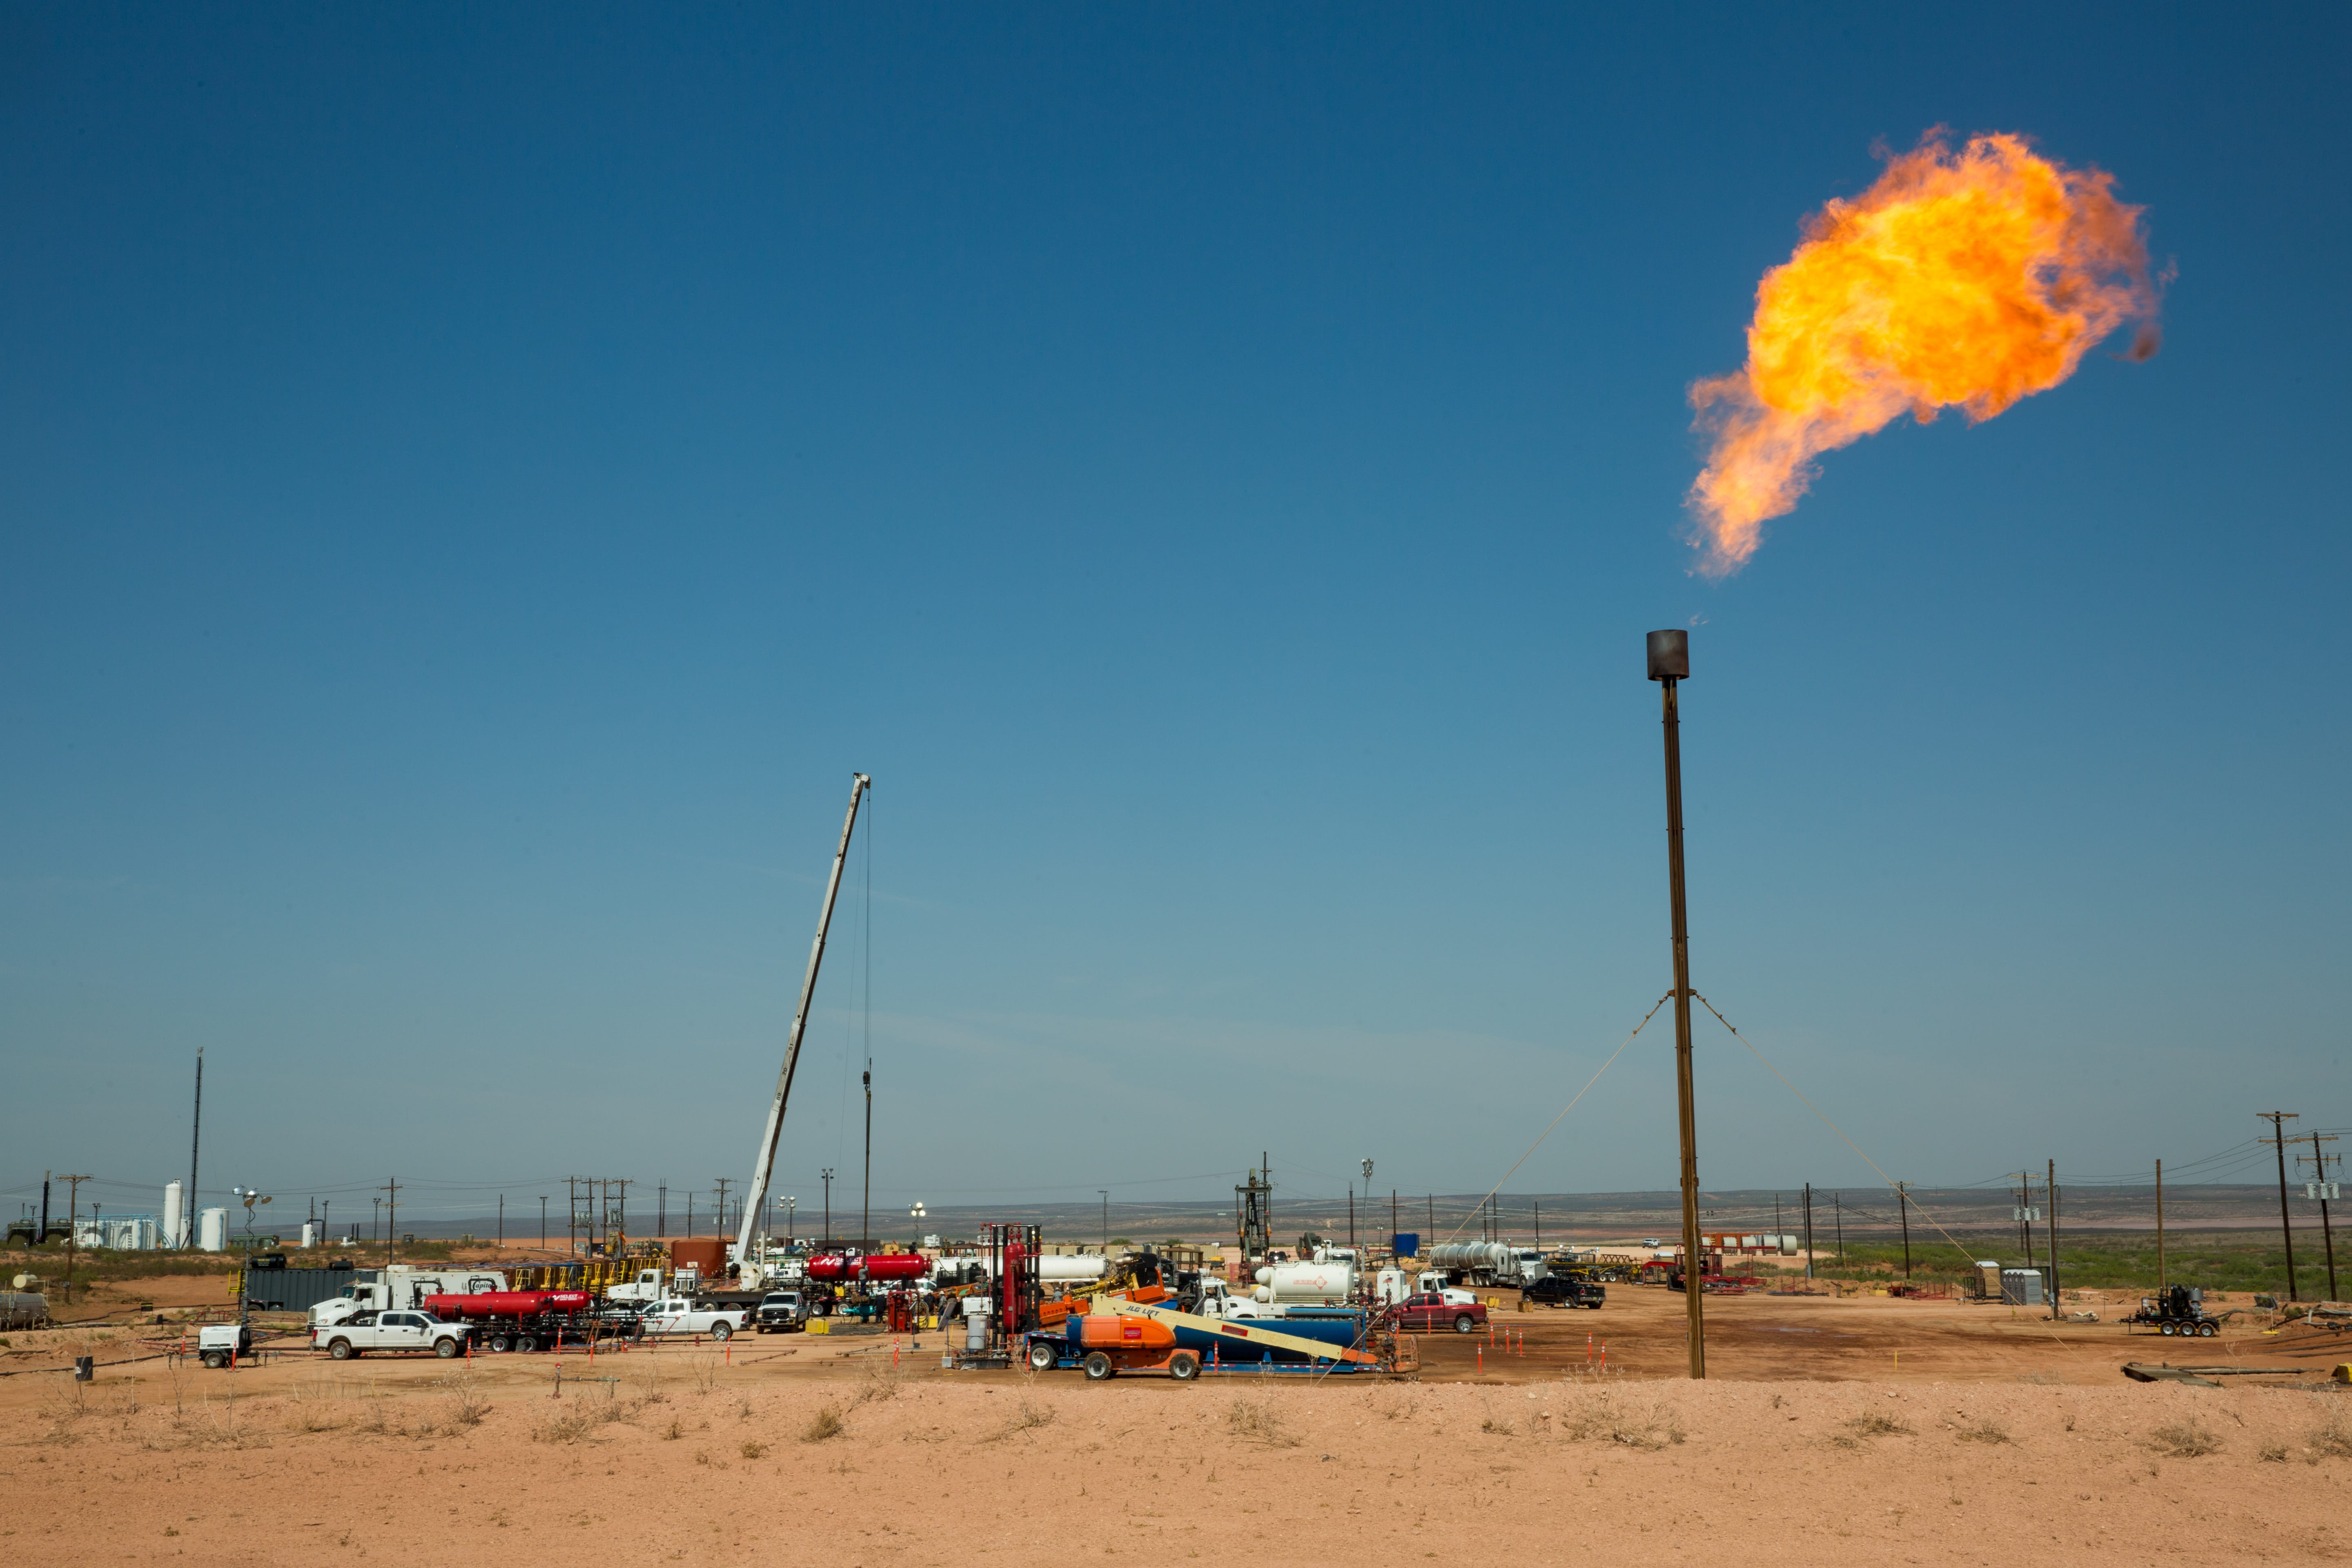 A flare burns atop a drill pad on land near Carlsbad, N.M., that Wayne Smith leased for ranching before his death in October. The development covered seven times more acreage than the Bureau of Land Management said would be used, Smith said in May. (Robin Zielinski for the Center for Public Integrity)